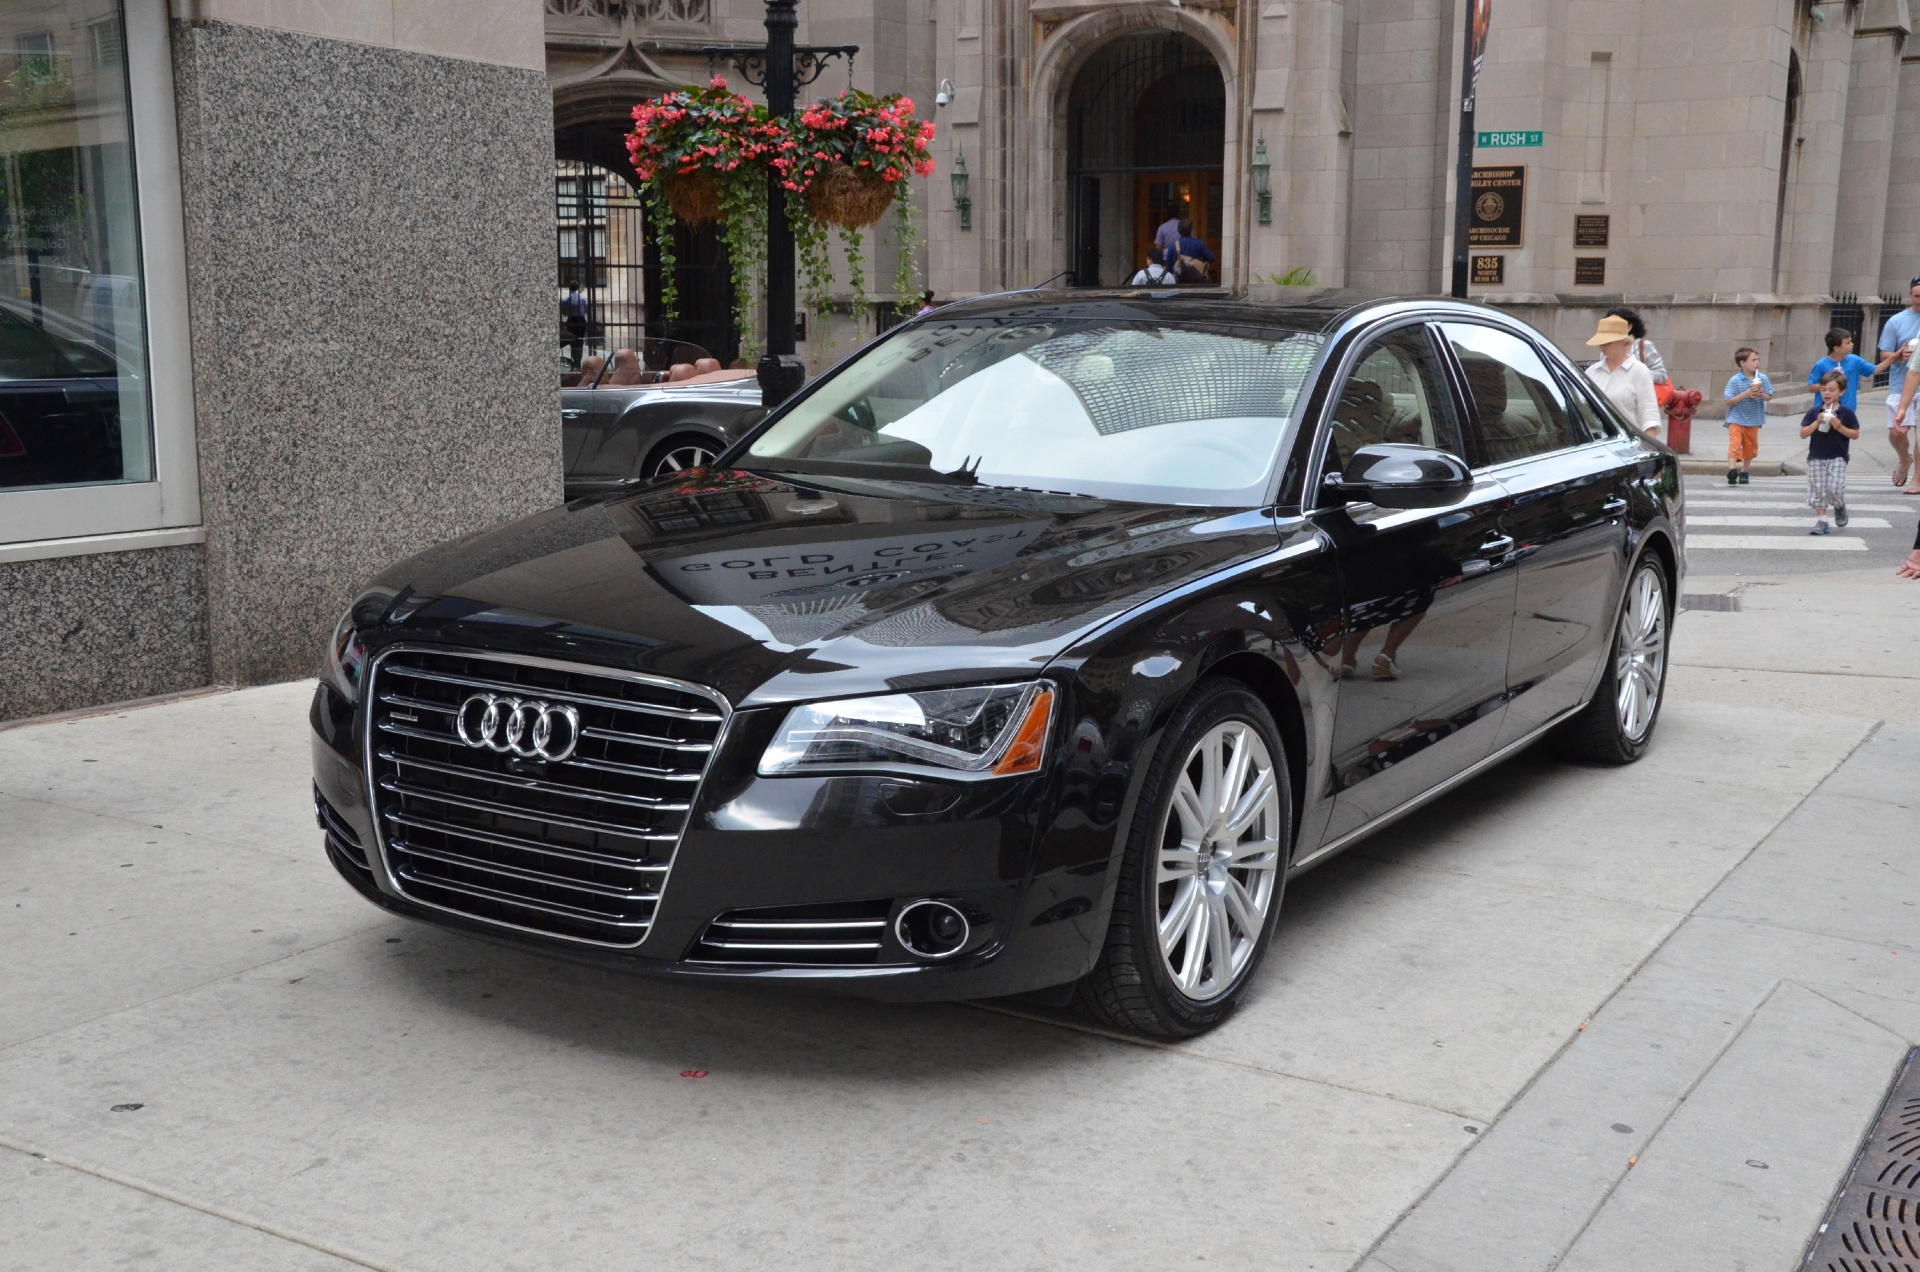 2014 audi a8 4 0t lwb quattro stock gc1381a for sale near chicago il il audi dealer. Black Bedroom Furniture Sets. Home Design Ideas